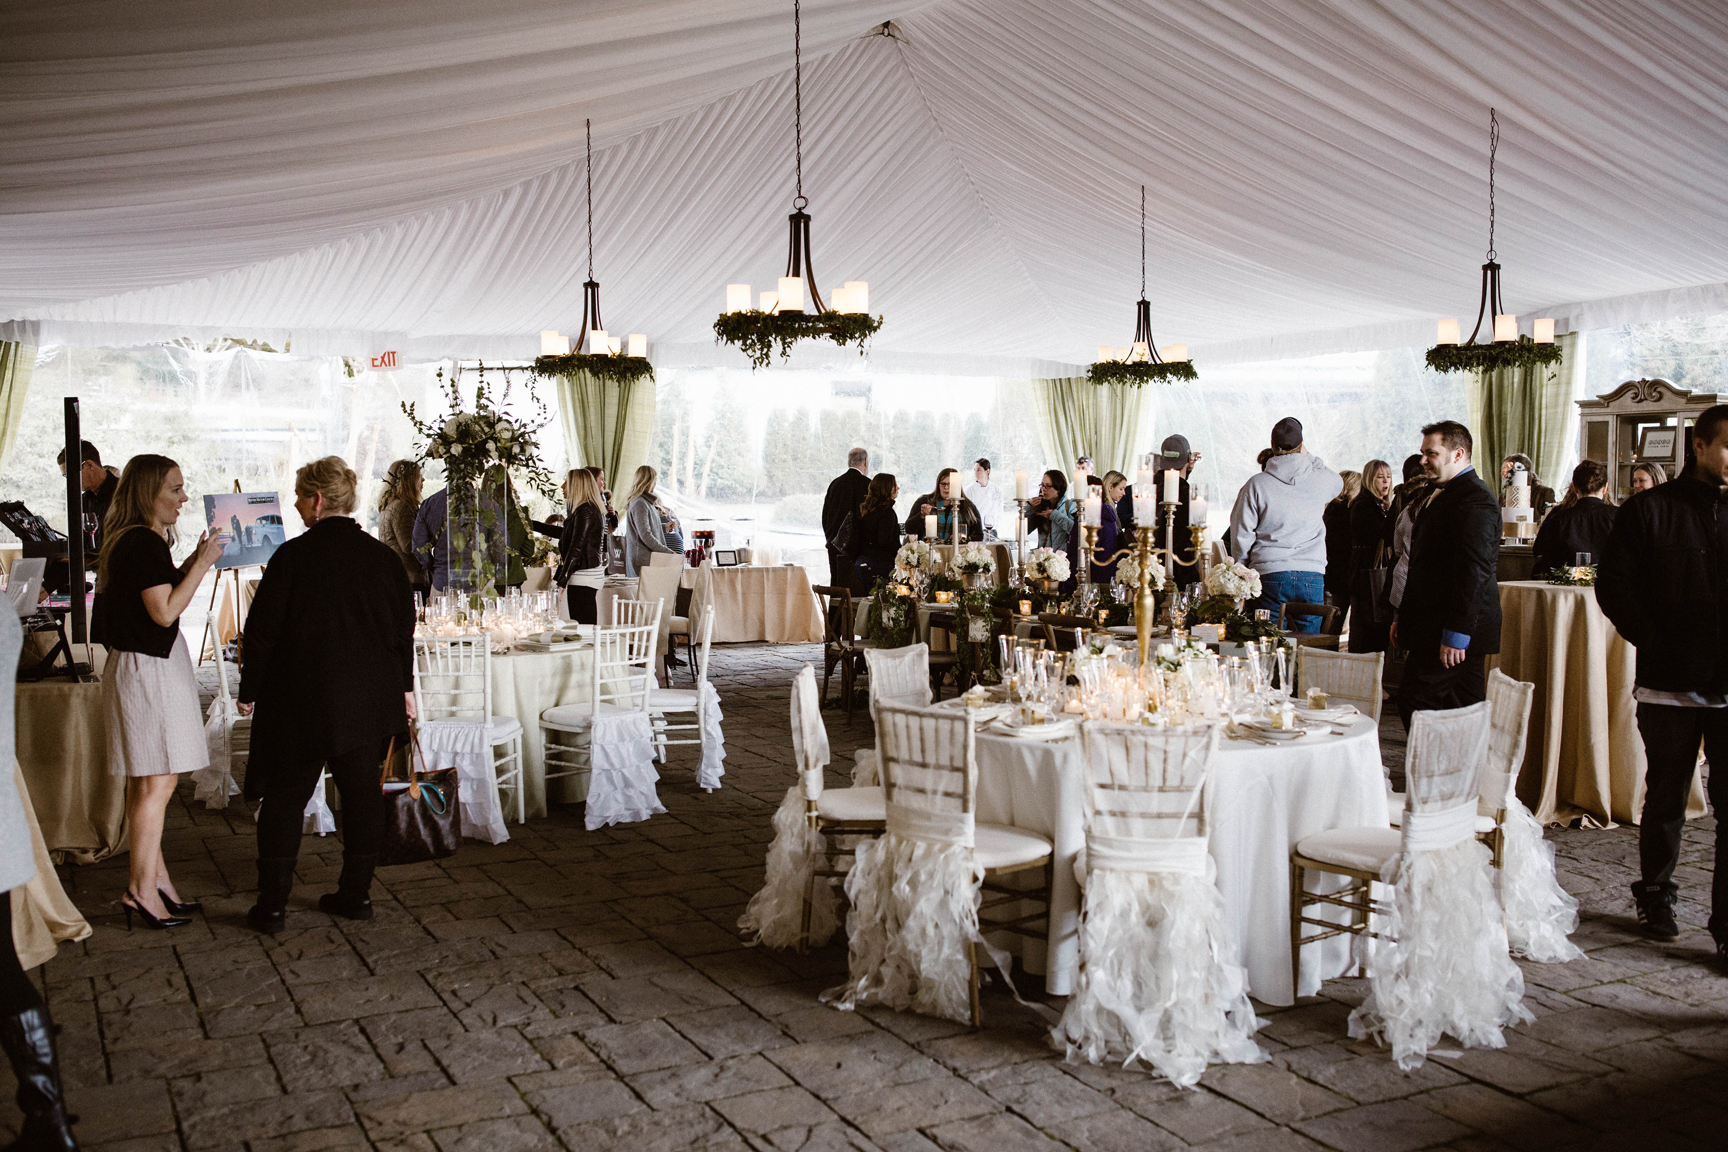 DeLille+Cellars_The+Chateau_Woodinville_2017_Weddings+In+Woodinville112.jpg